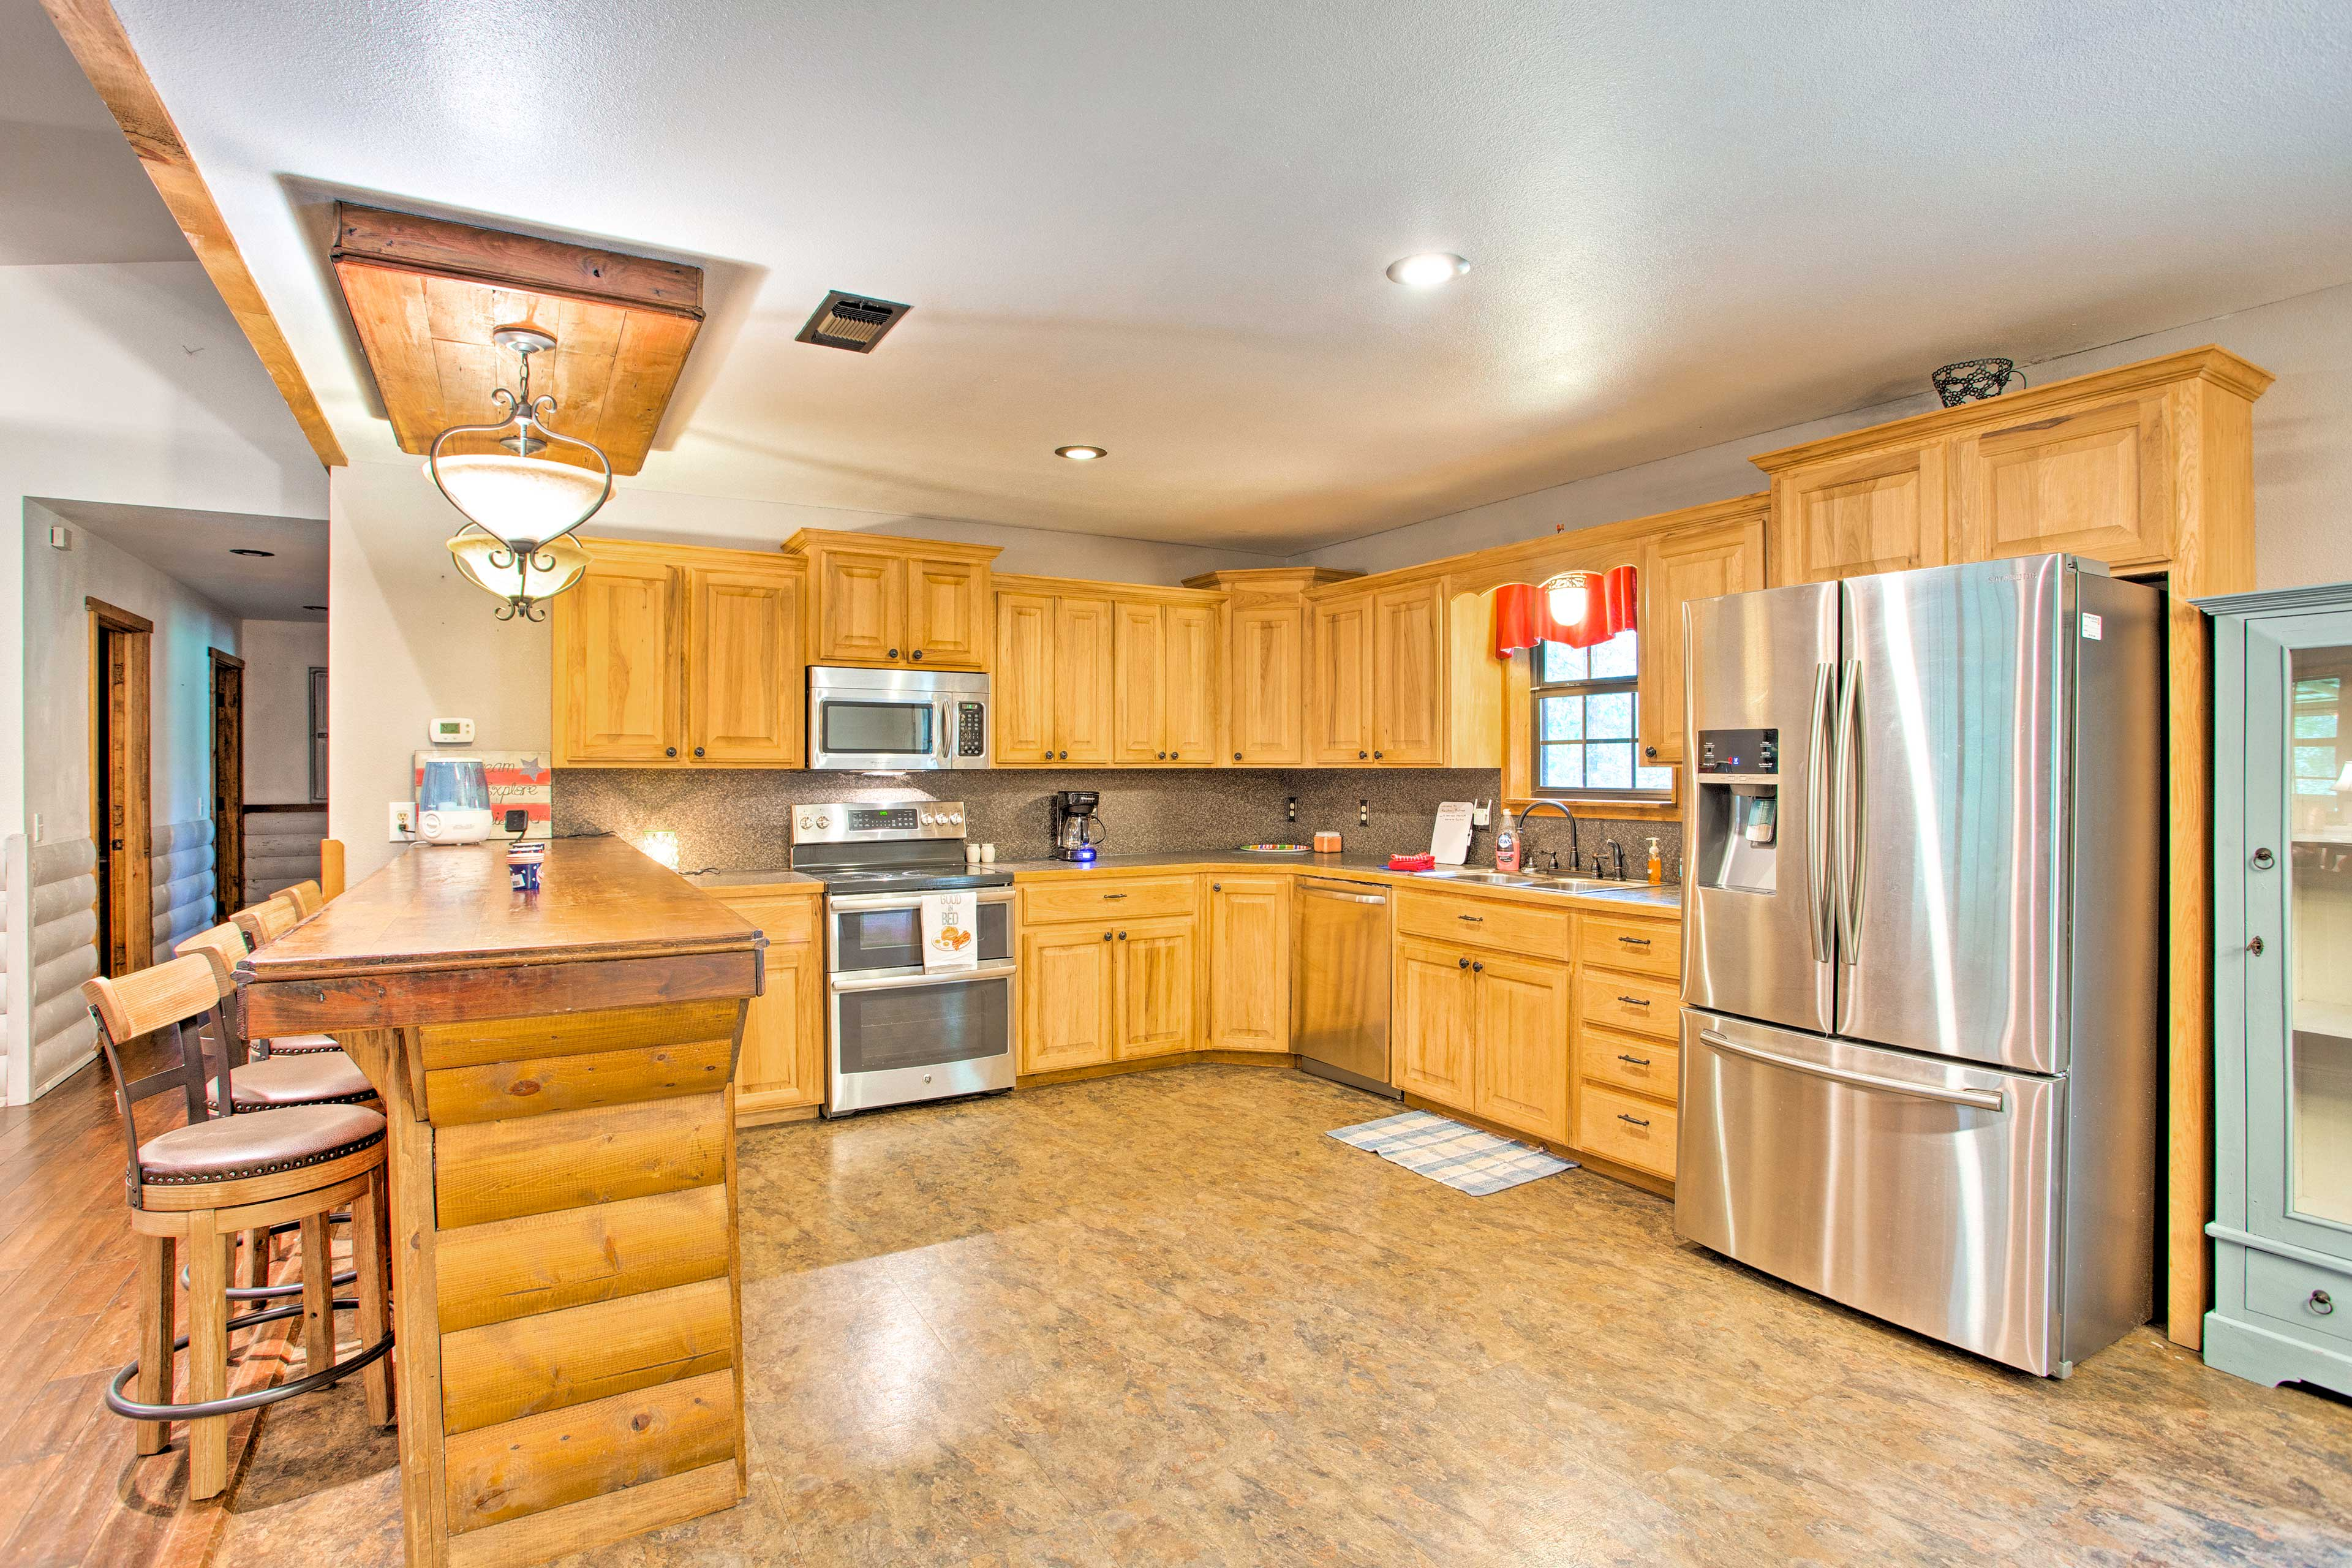 Stainless steel appliances complement the wood cabinetry.